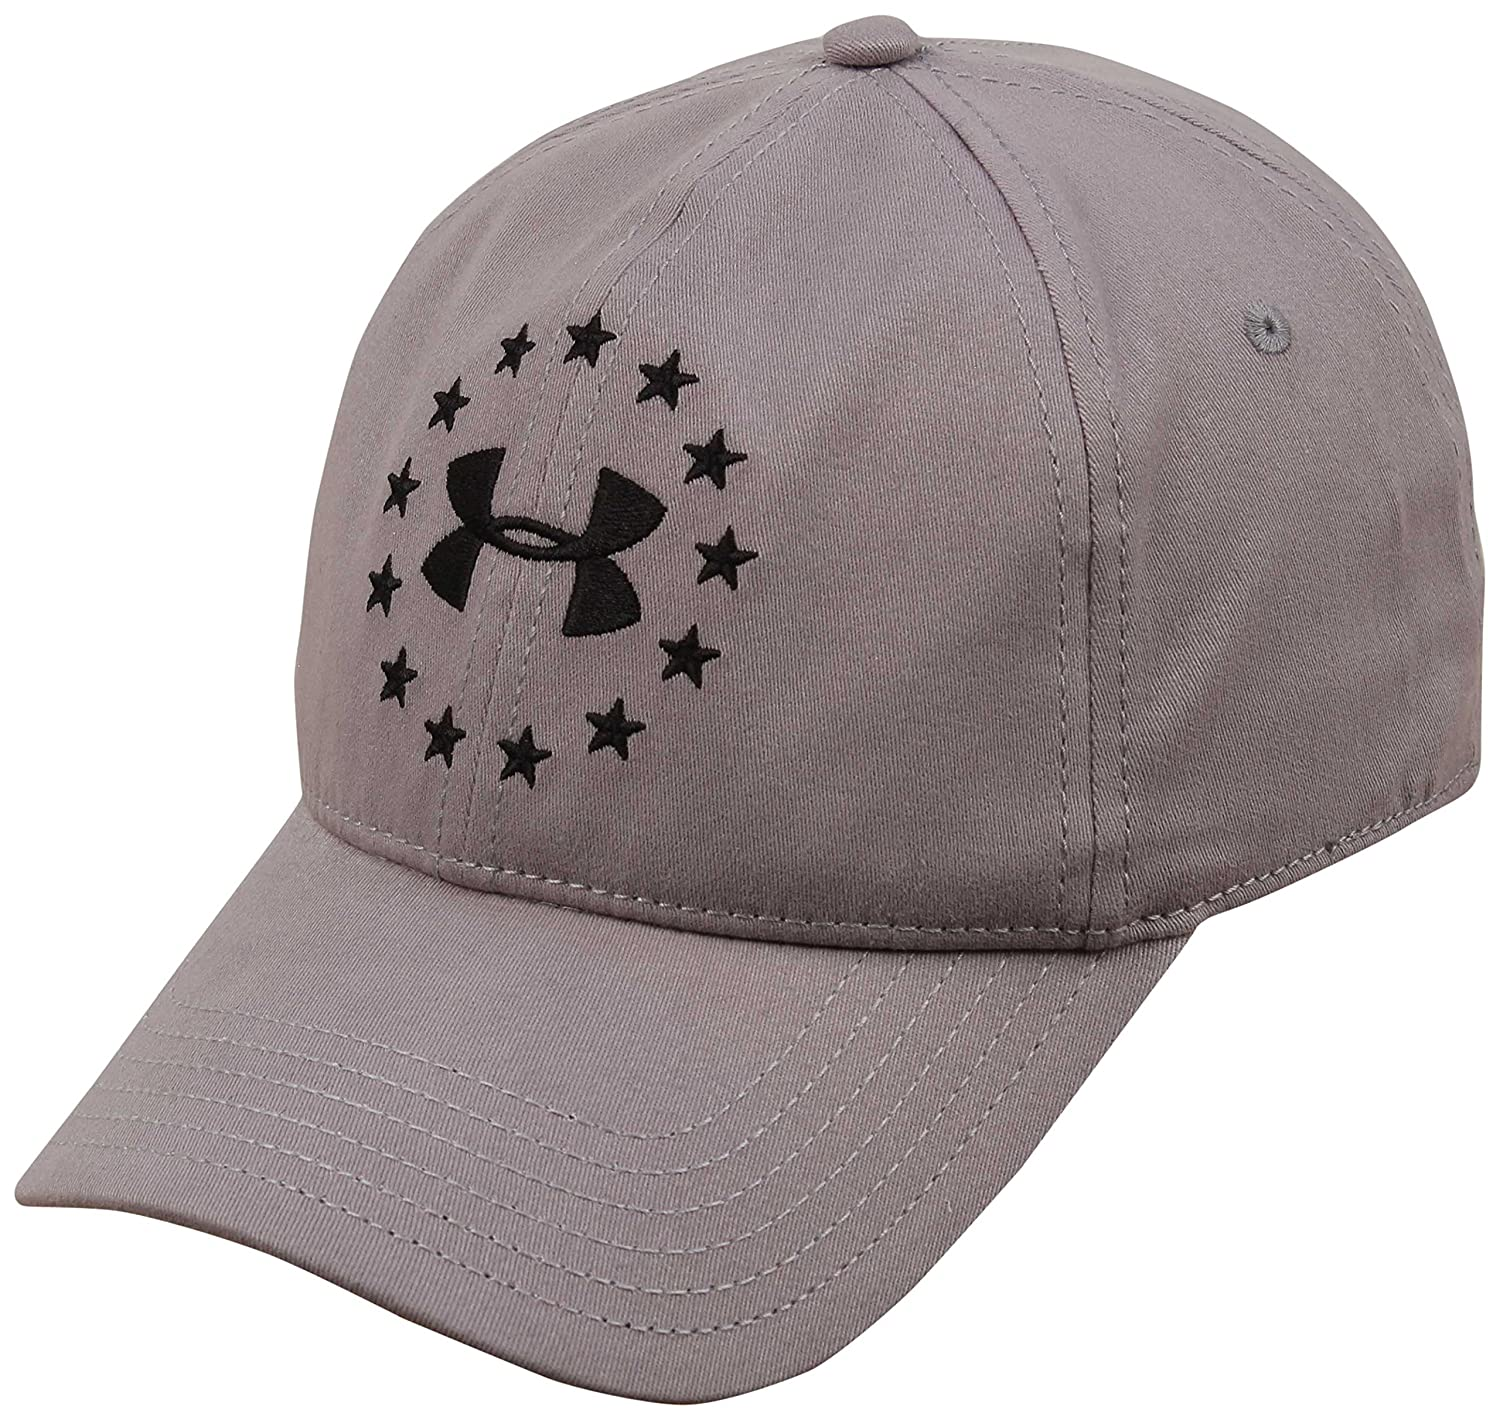 buy popular 99eb1 4ba11 Under Armour Freedom Hat - Steel Black at Amazon Men s Clothing store